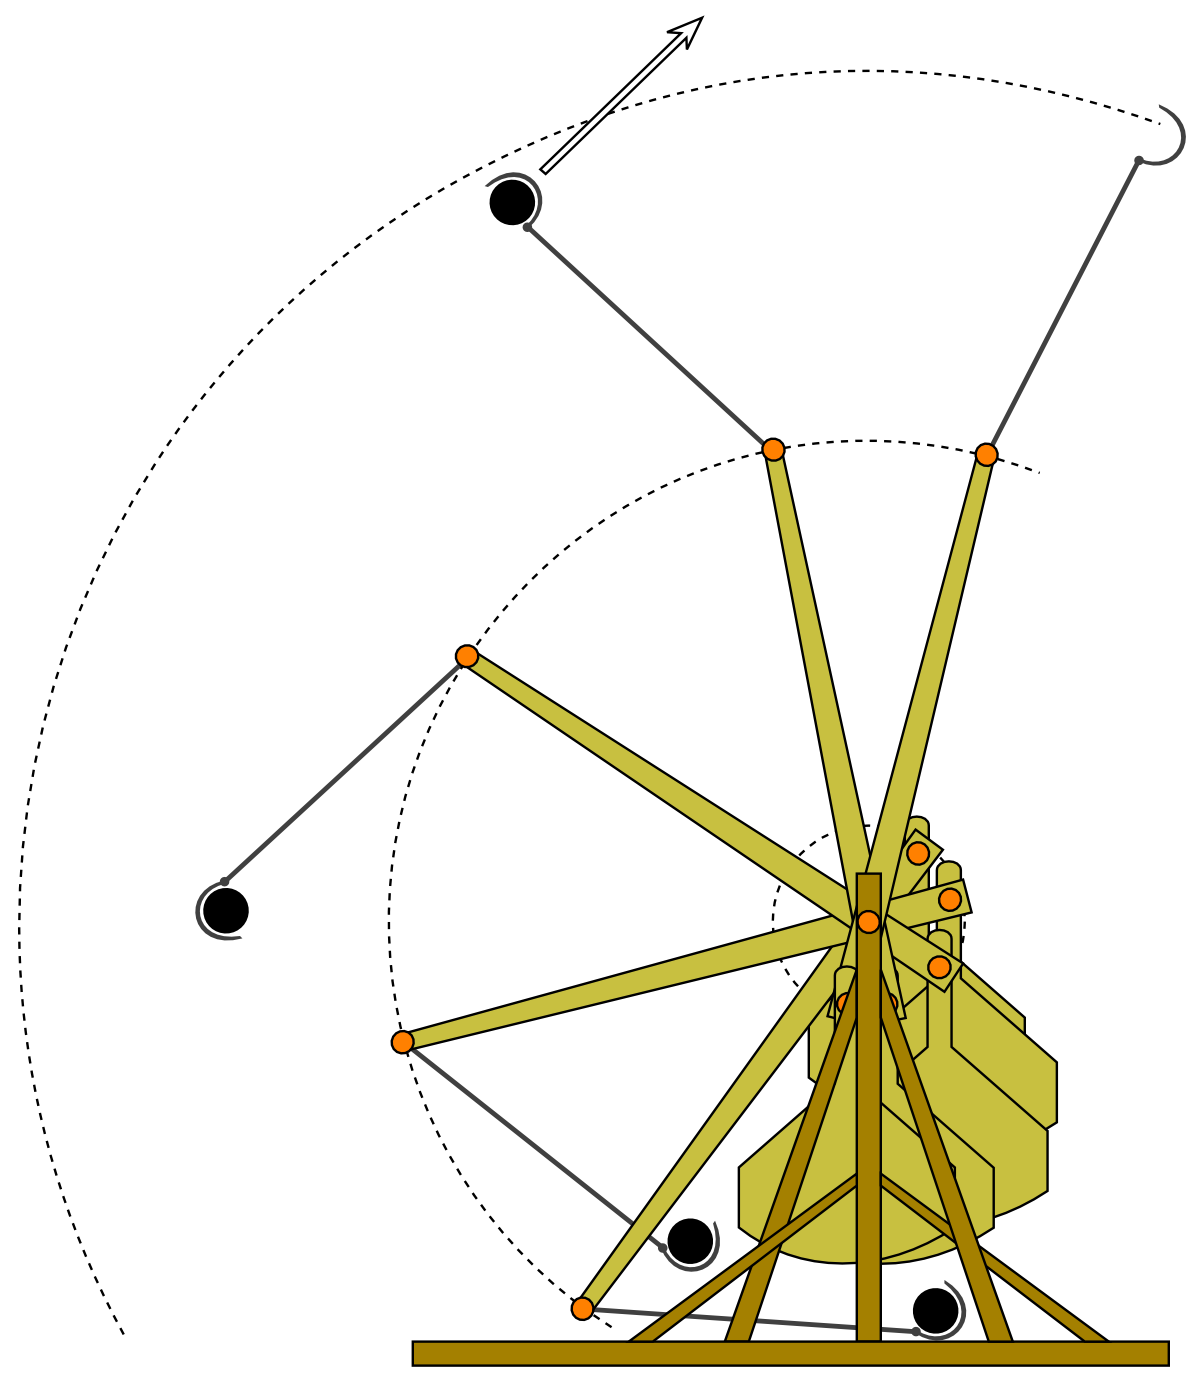 how can a trebuchet use gravity The motion of a trebuchet during launch can become fairly complicated, and cannot be fully understood using intuition alone therefore, one must analyze trebuchet physics in full in order to make accurate predictions.